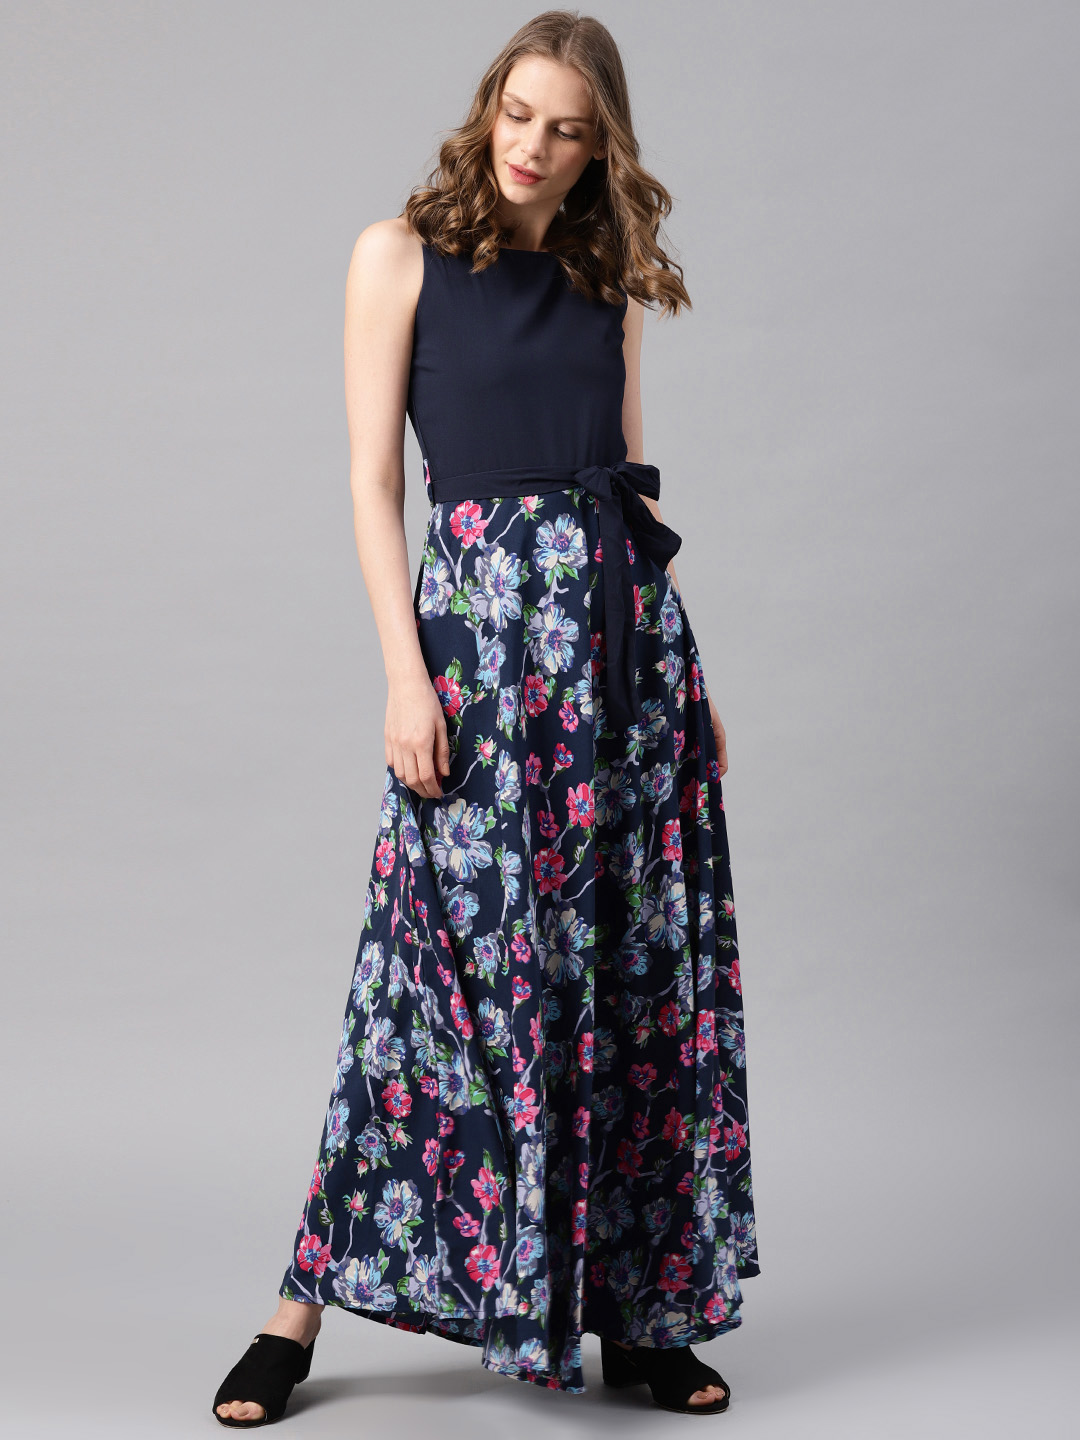 ab24980175a Buy Tokyo Talkies Women Navy Blue Printed Maxi Dress Online ...